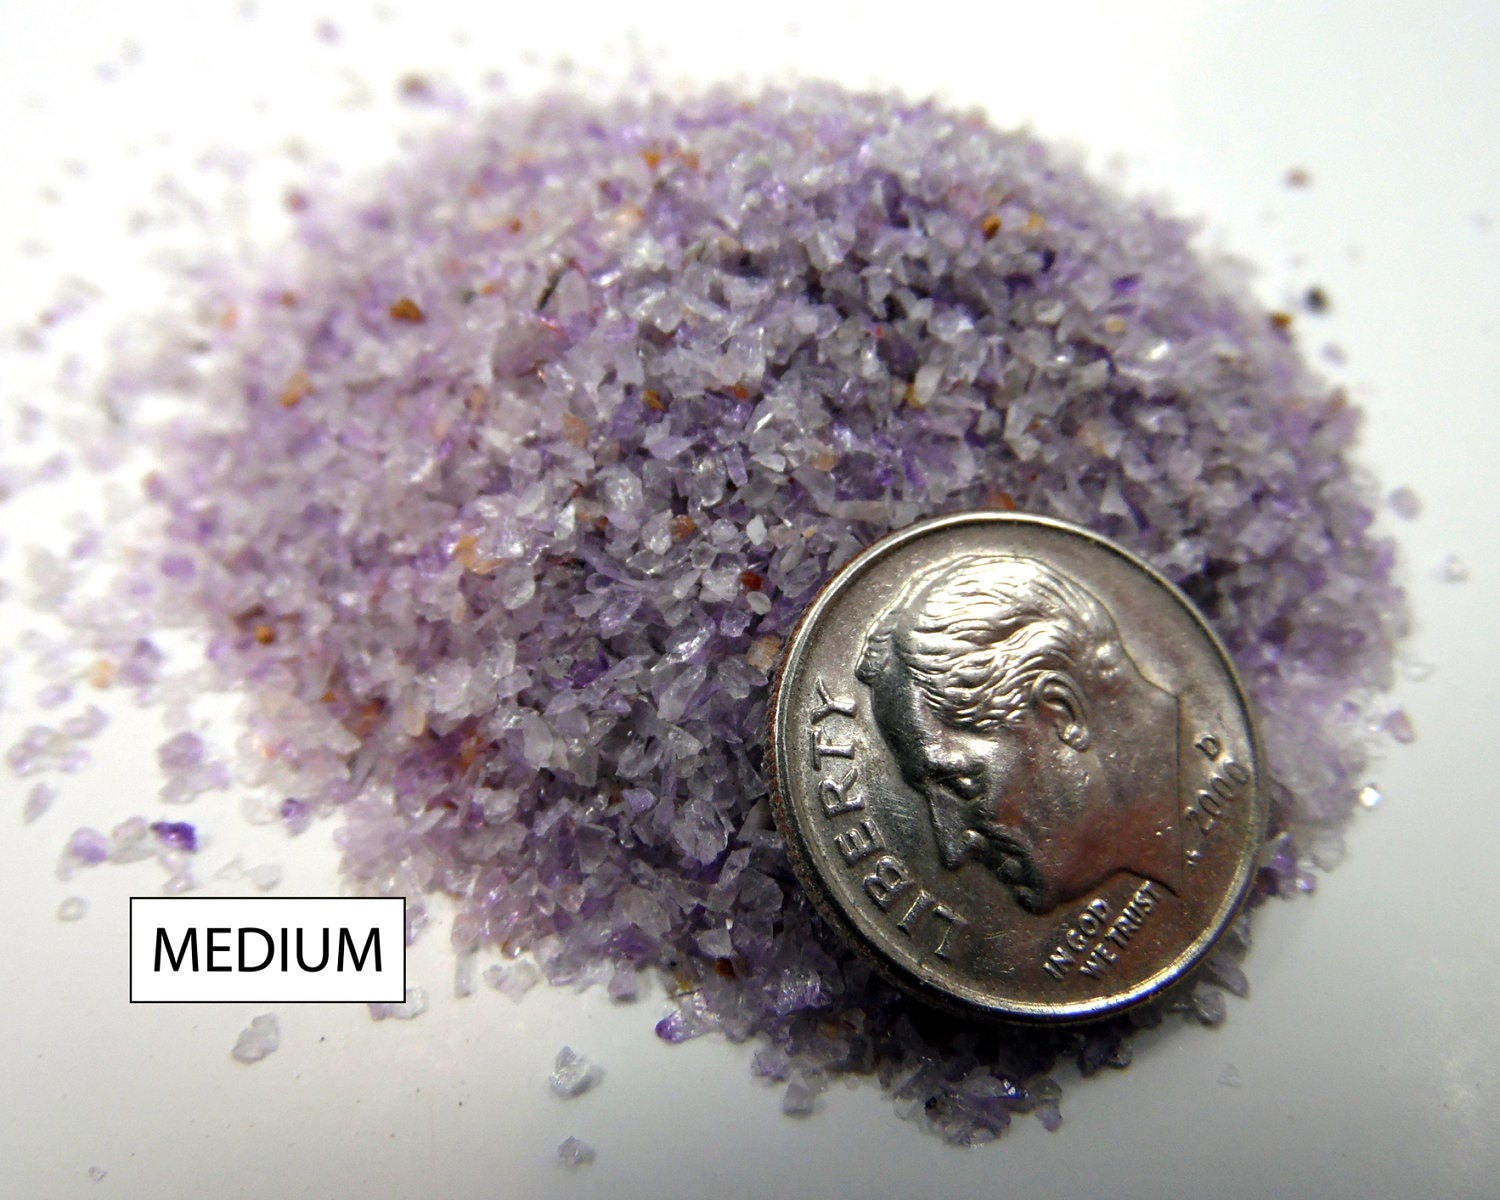 Crushed Amethyst Inlay : Crushed amethyst for inlays woodworking pen turning artists